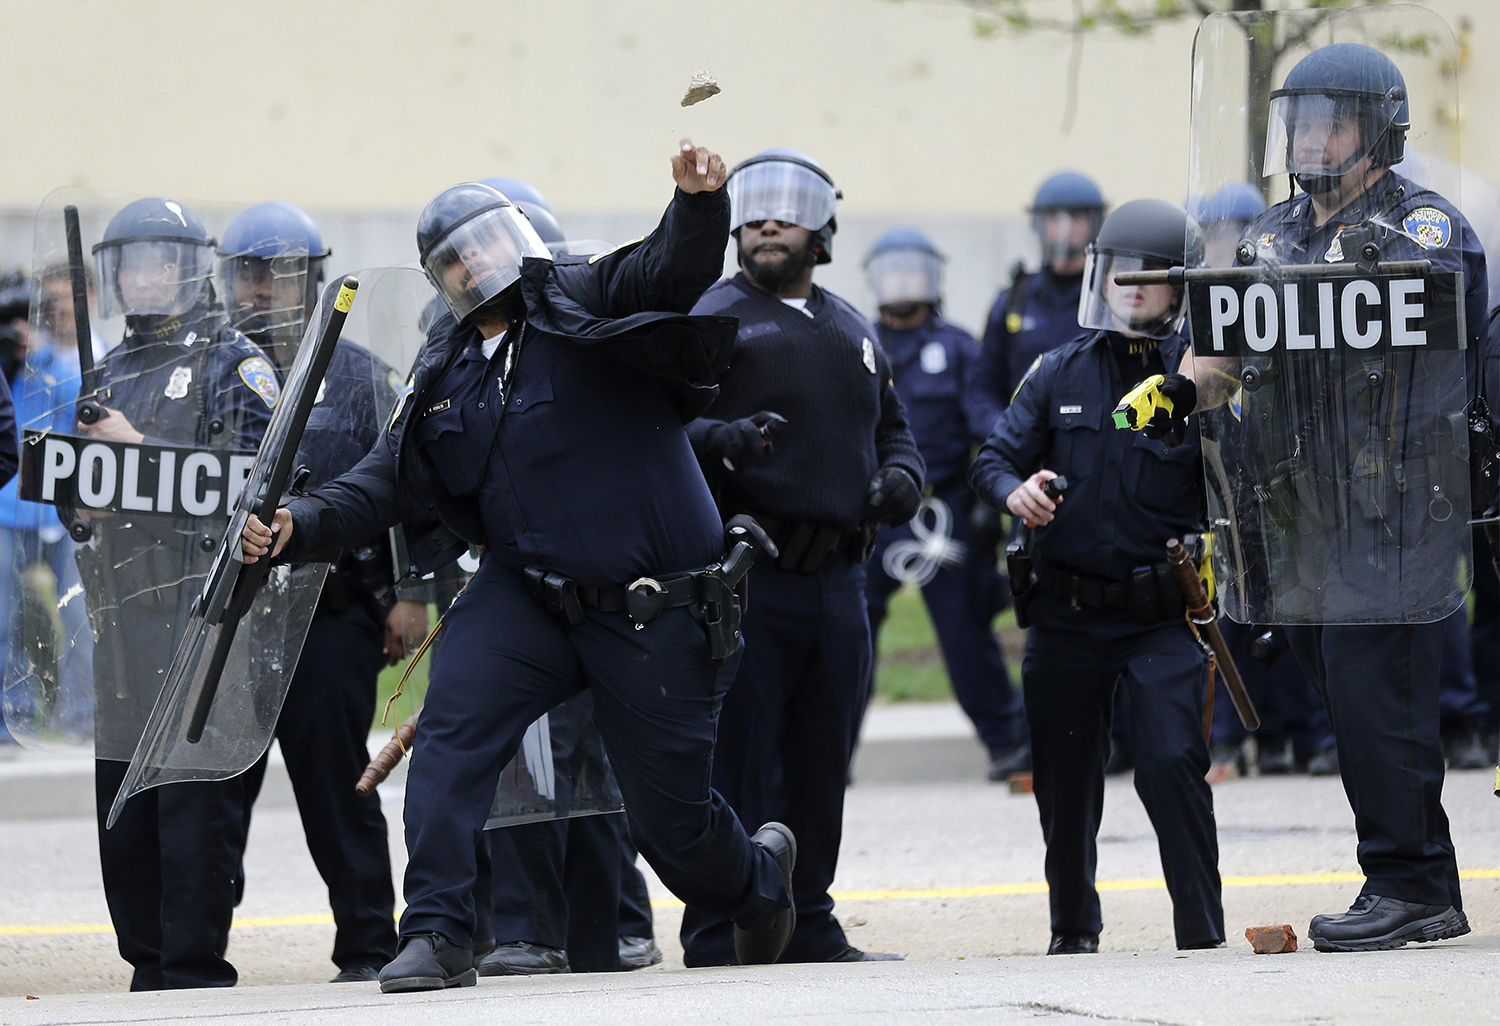 Baltimore police officers in riot gear push protestors back along - Baltimore Police Officers In Riot Gear Push Protestors Back Along 6